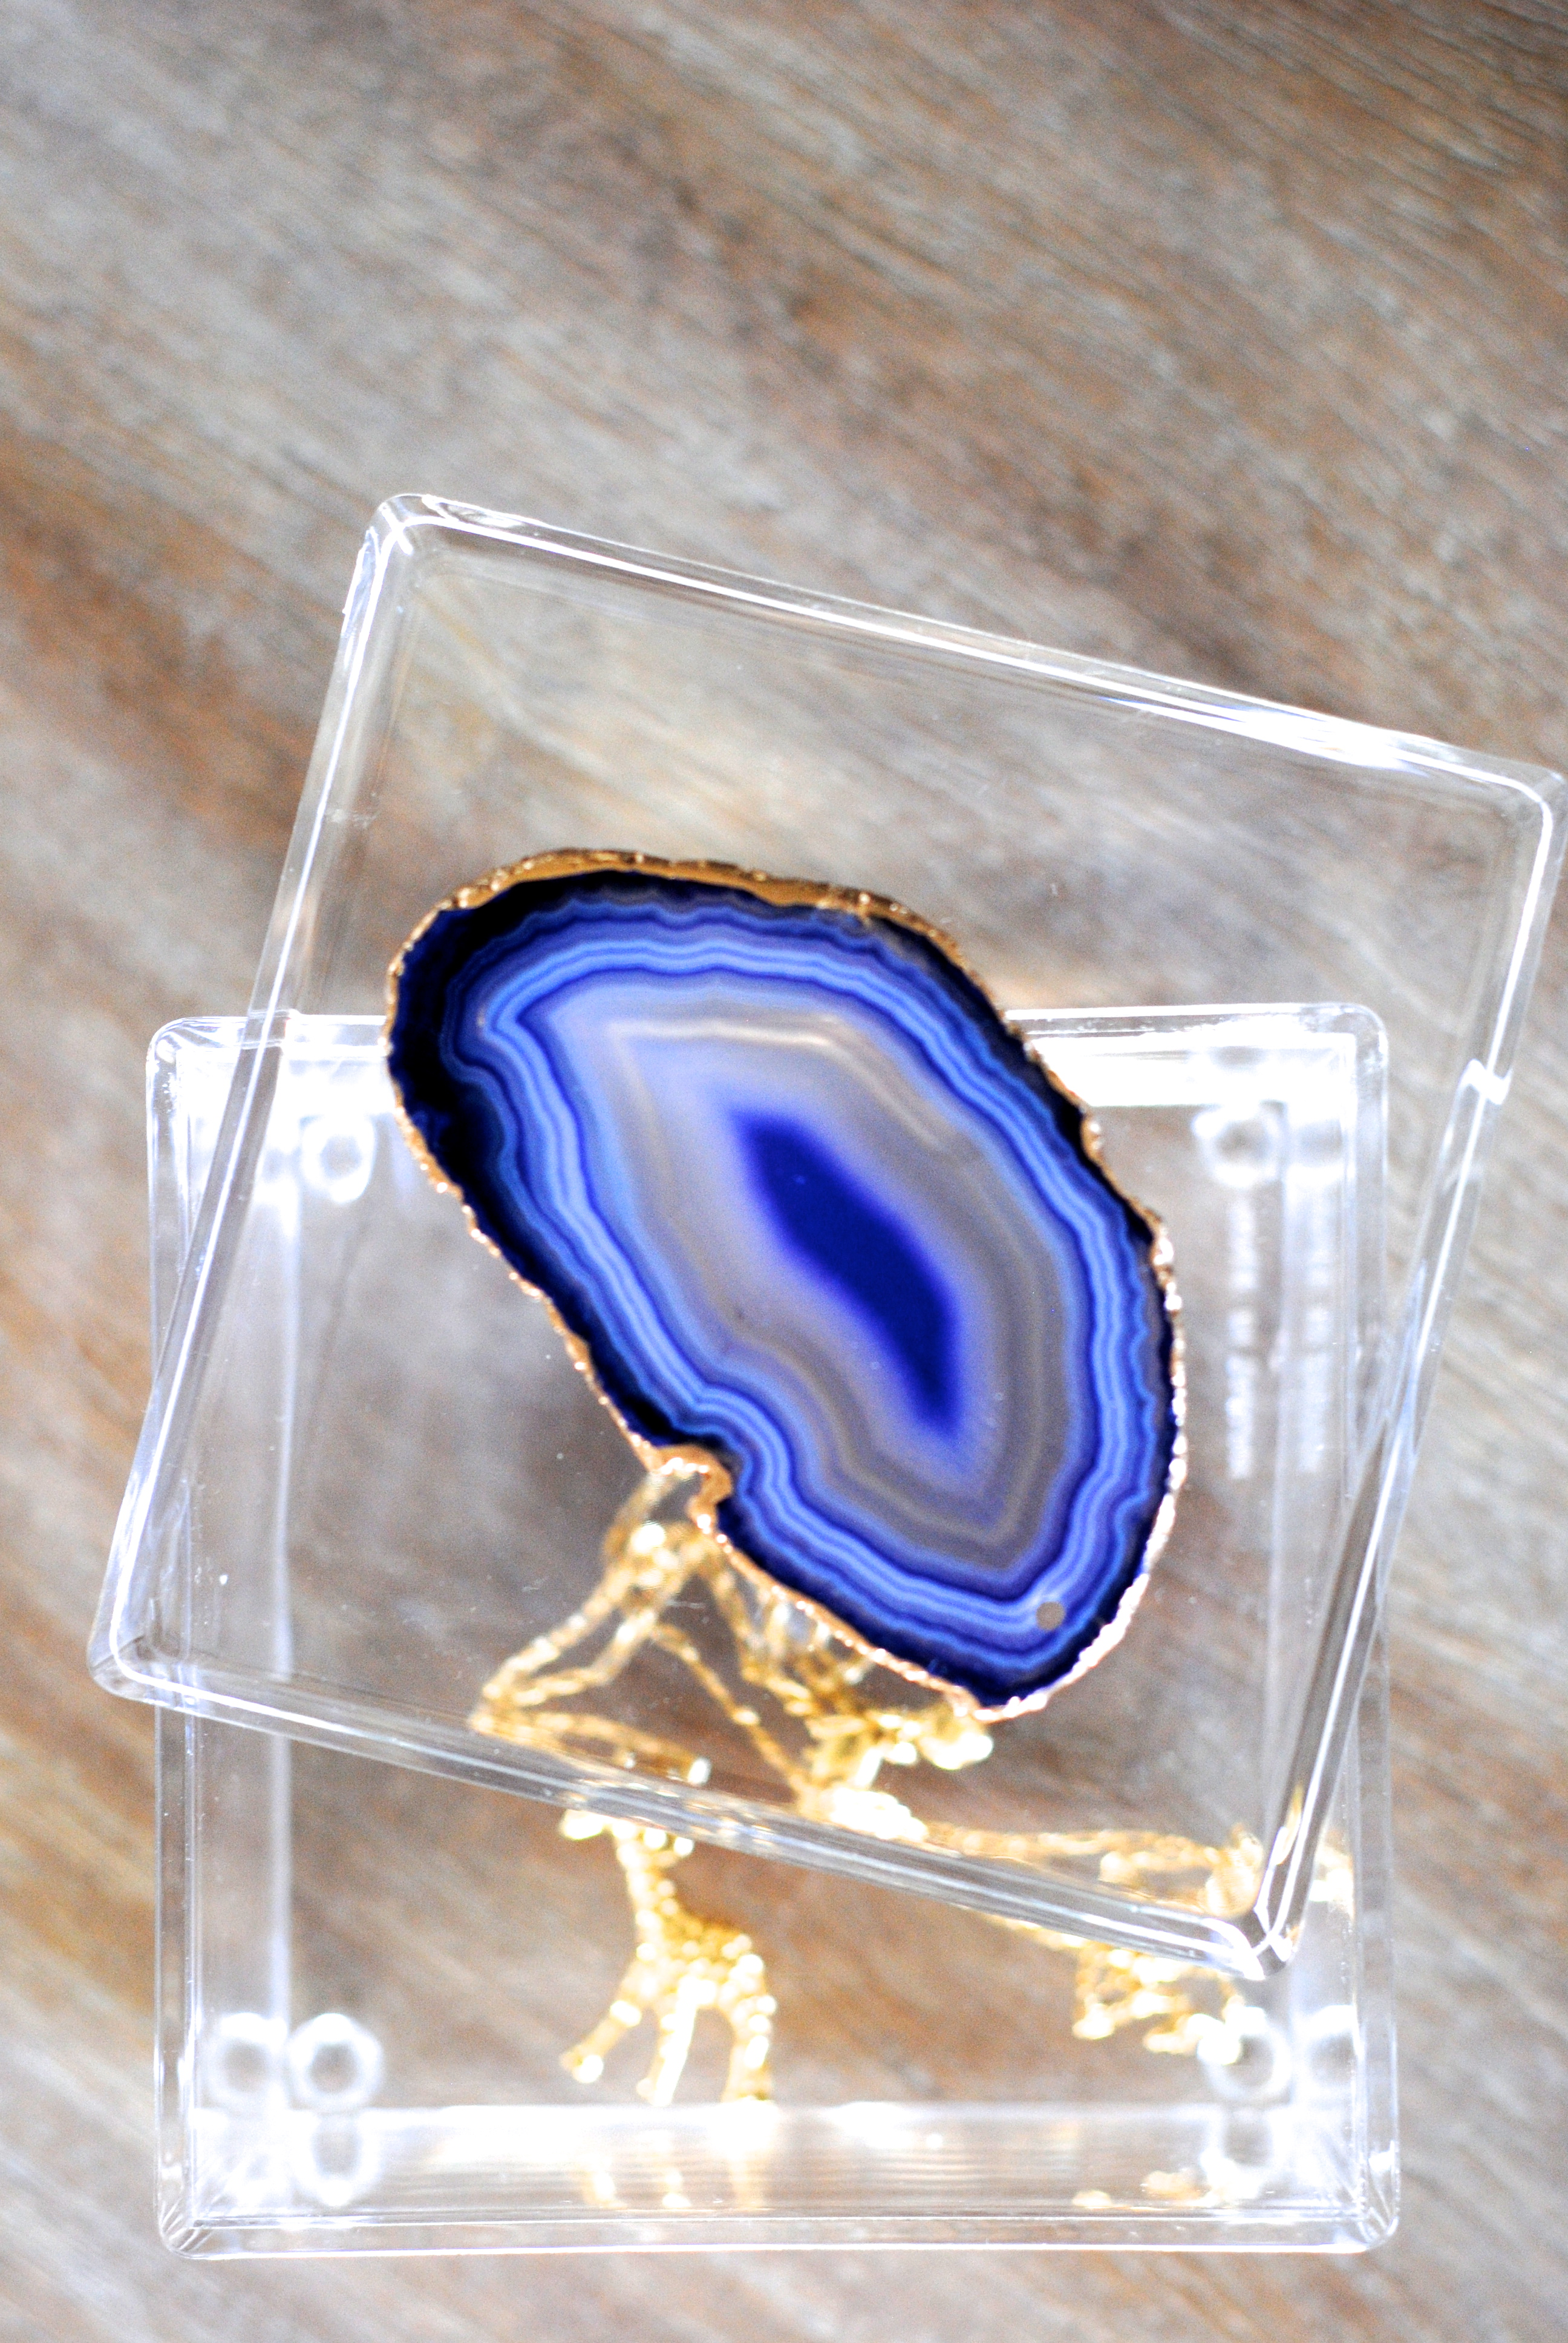 Gorgeous agate jewelry box